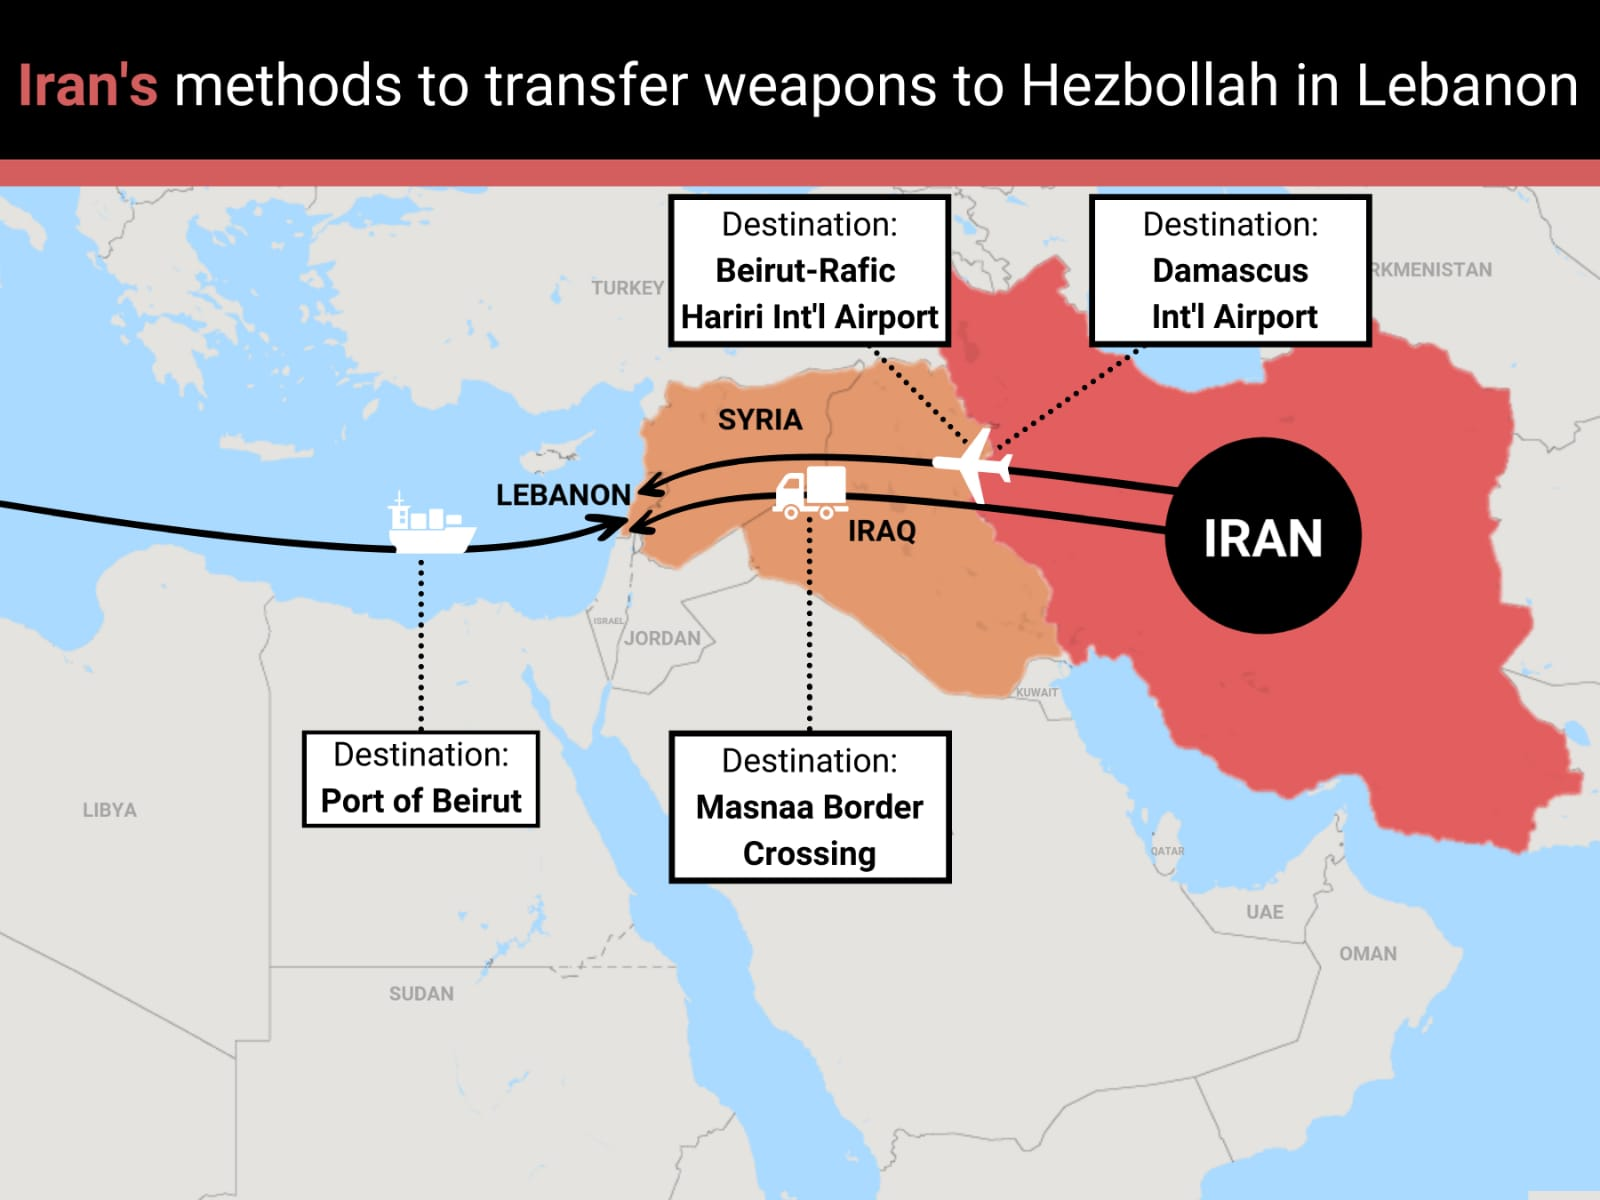 Israel Claims Hezbollah Smuggling Weapons, Missile Manufacturing Materials Through Beirut Port